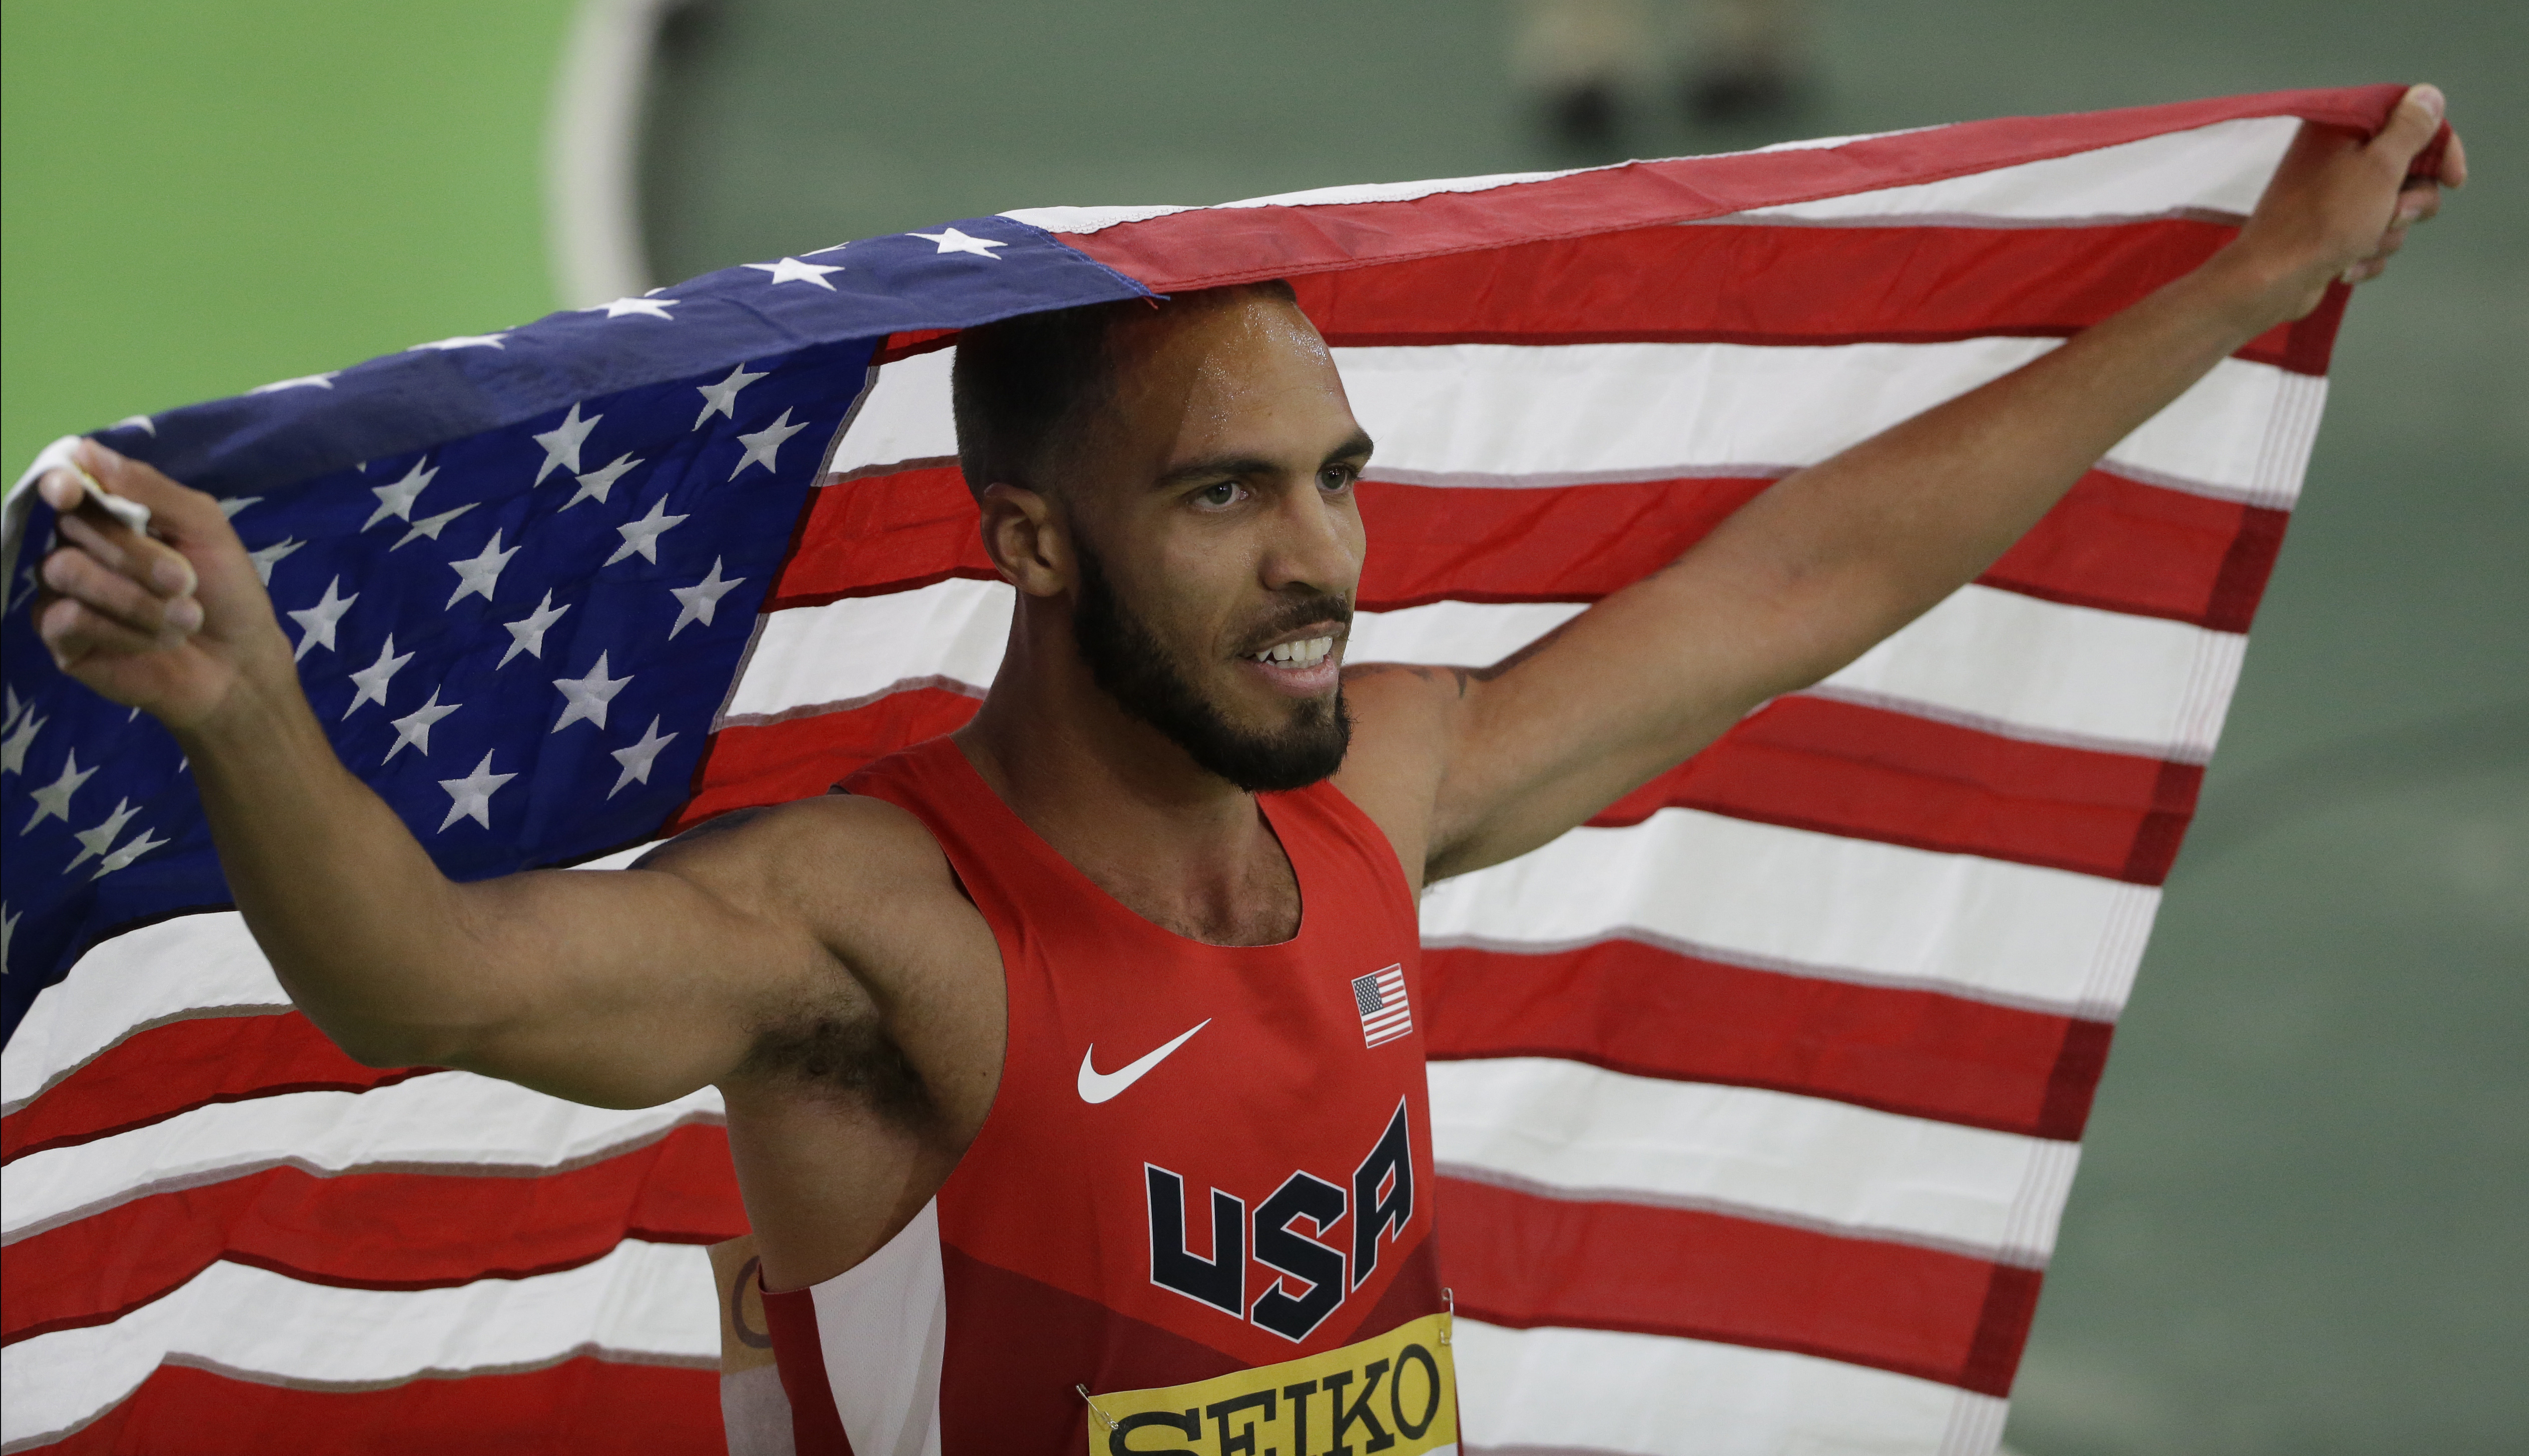 FILE - In this March 19, 2016, file photo, United States' Boris Berian holds the U.S. flag after he won the men's 800-meter sprint final during the World Indoor Athletics Championships, in Portland, Ore.   Nike is dropped its lawsuit against Boris Berian